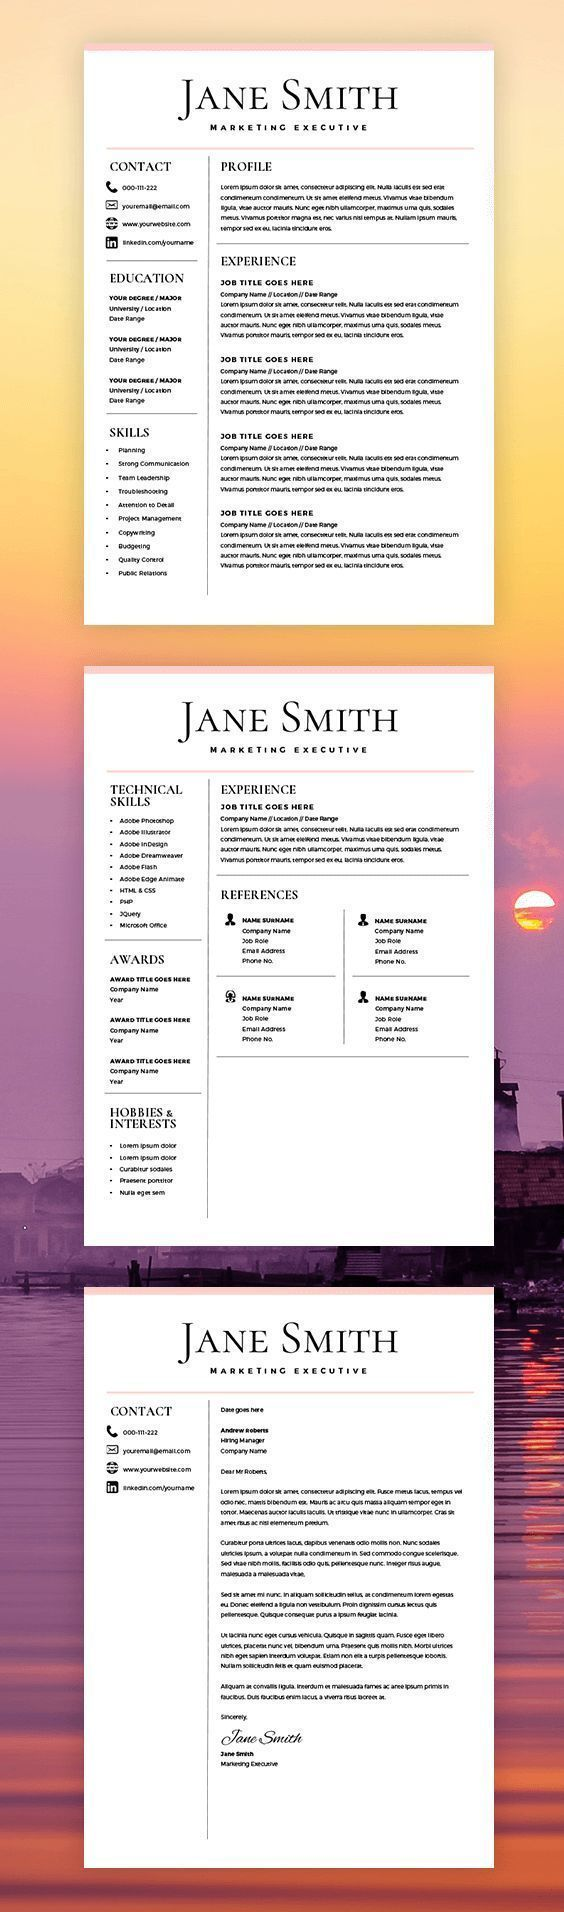 resume template cv template free cover letter ms word on mac pc - Cv Template For Free